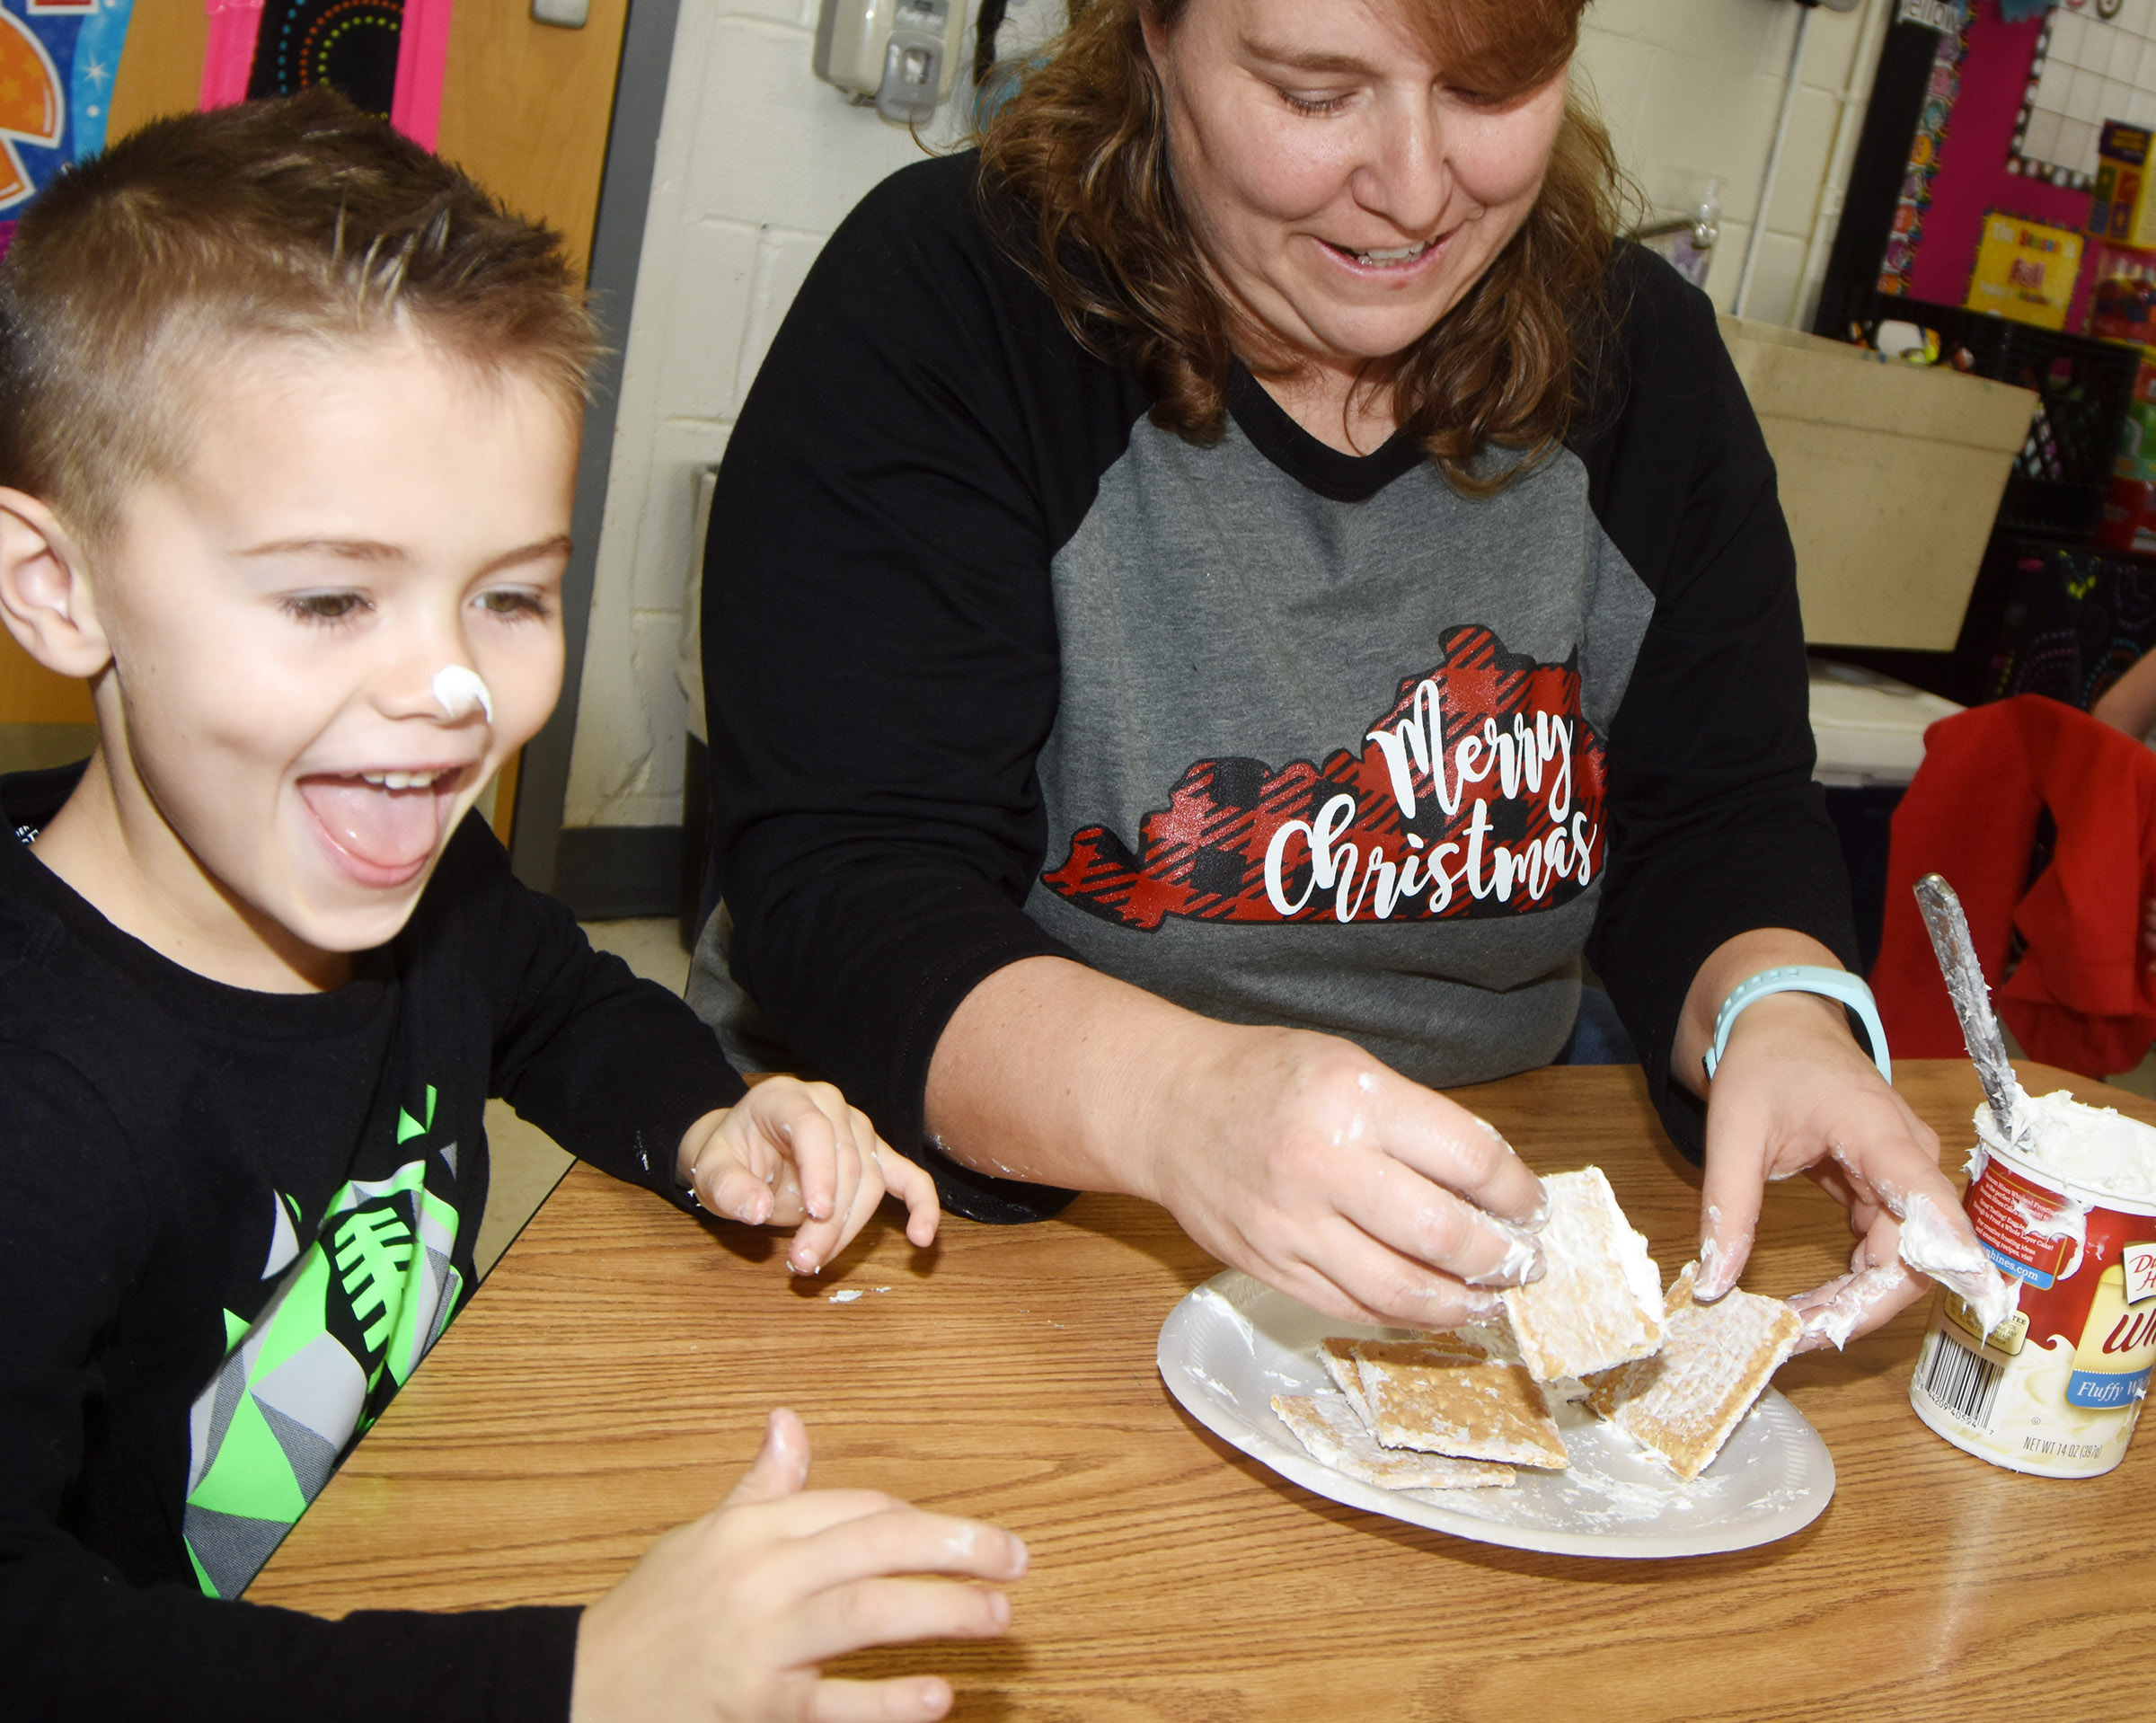 CES kindergarten assistant Wanda Swafford puts icing on Tate Jones's nose as they build a gingerbread house together.